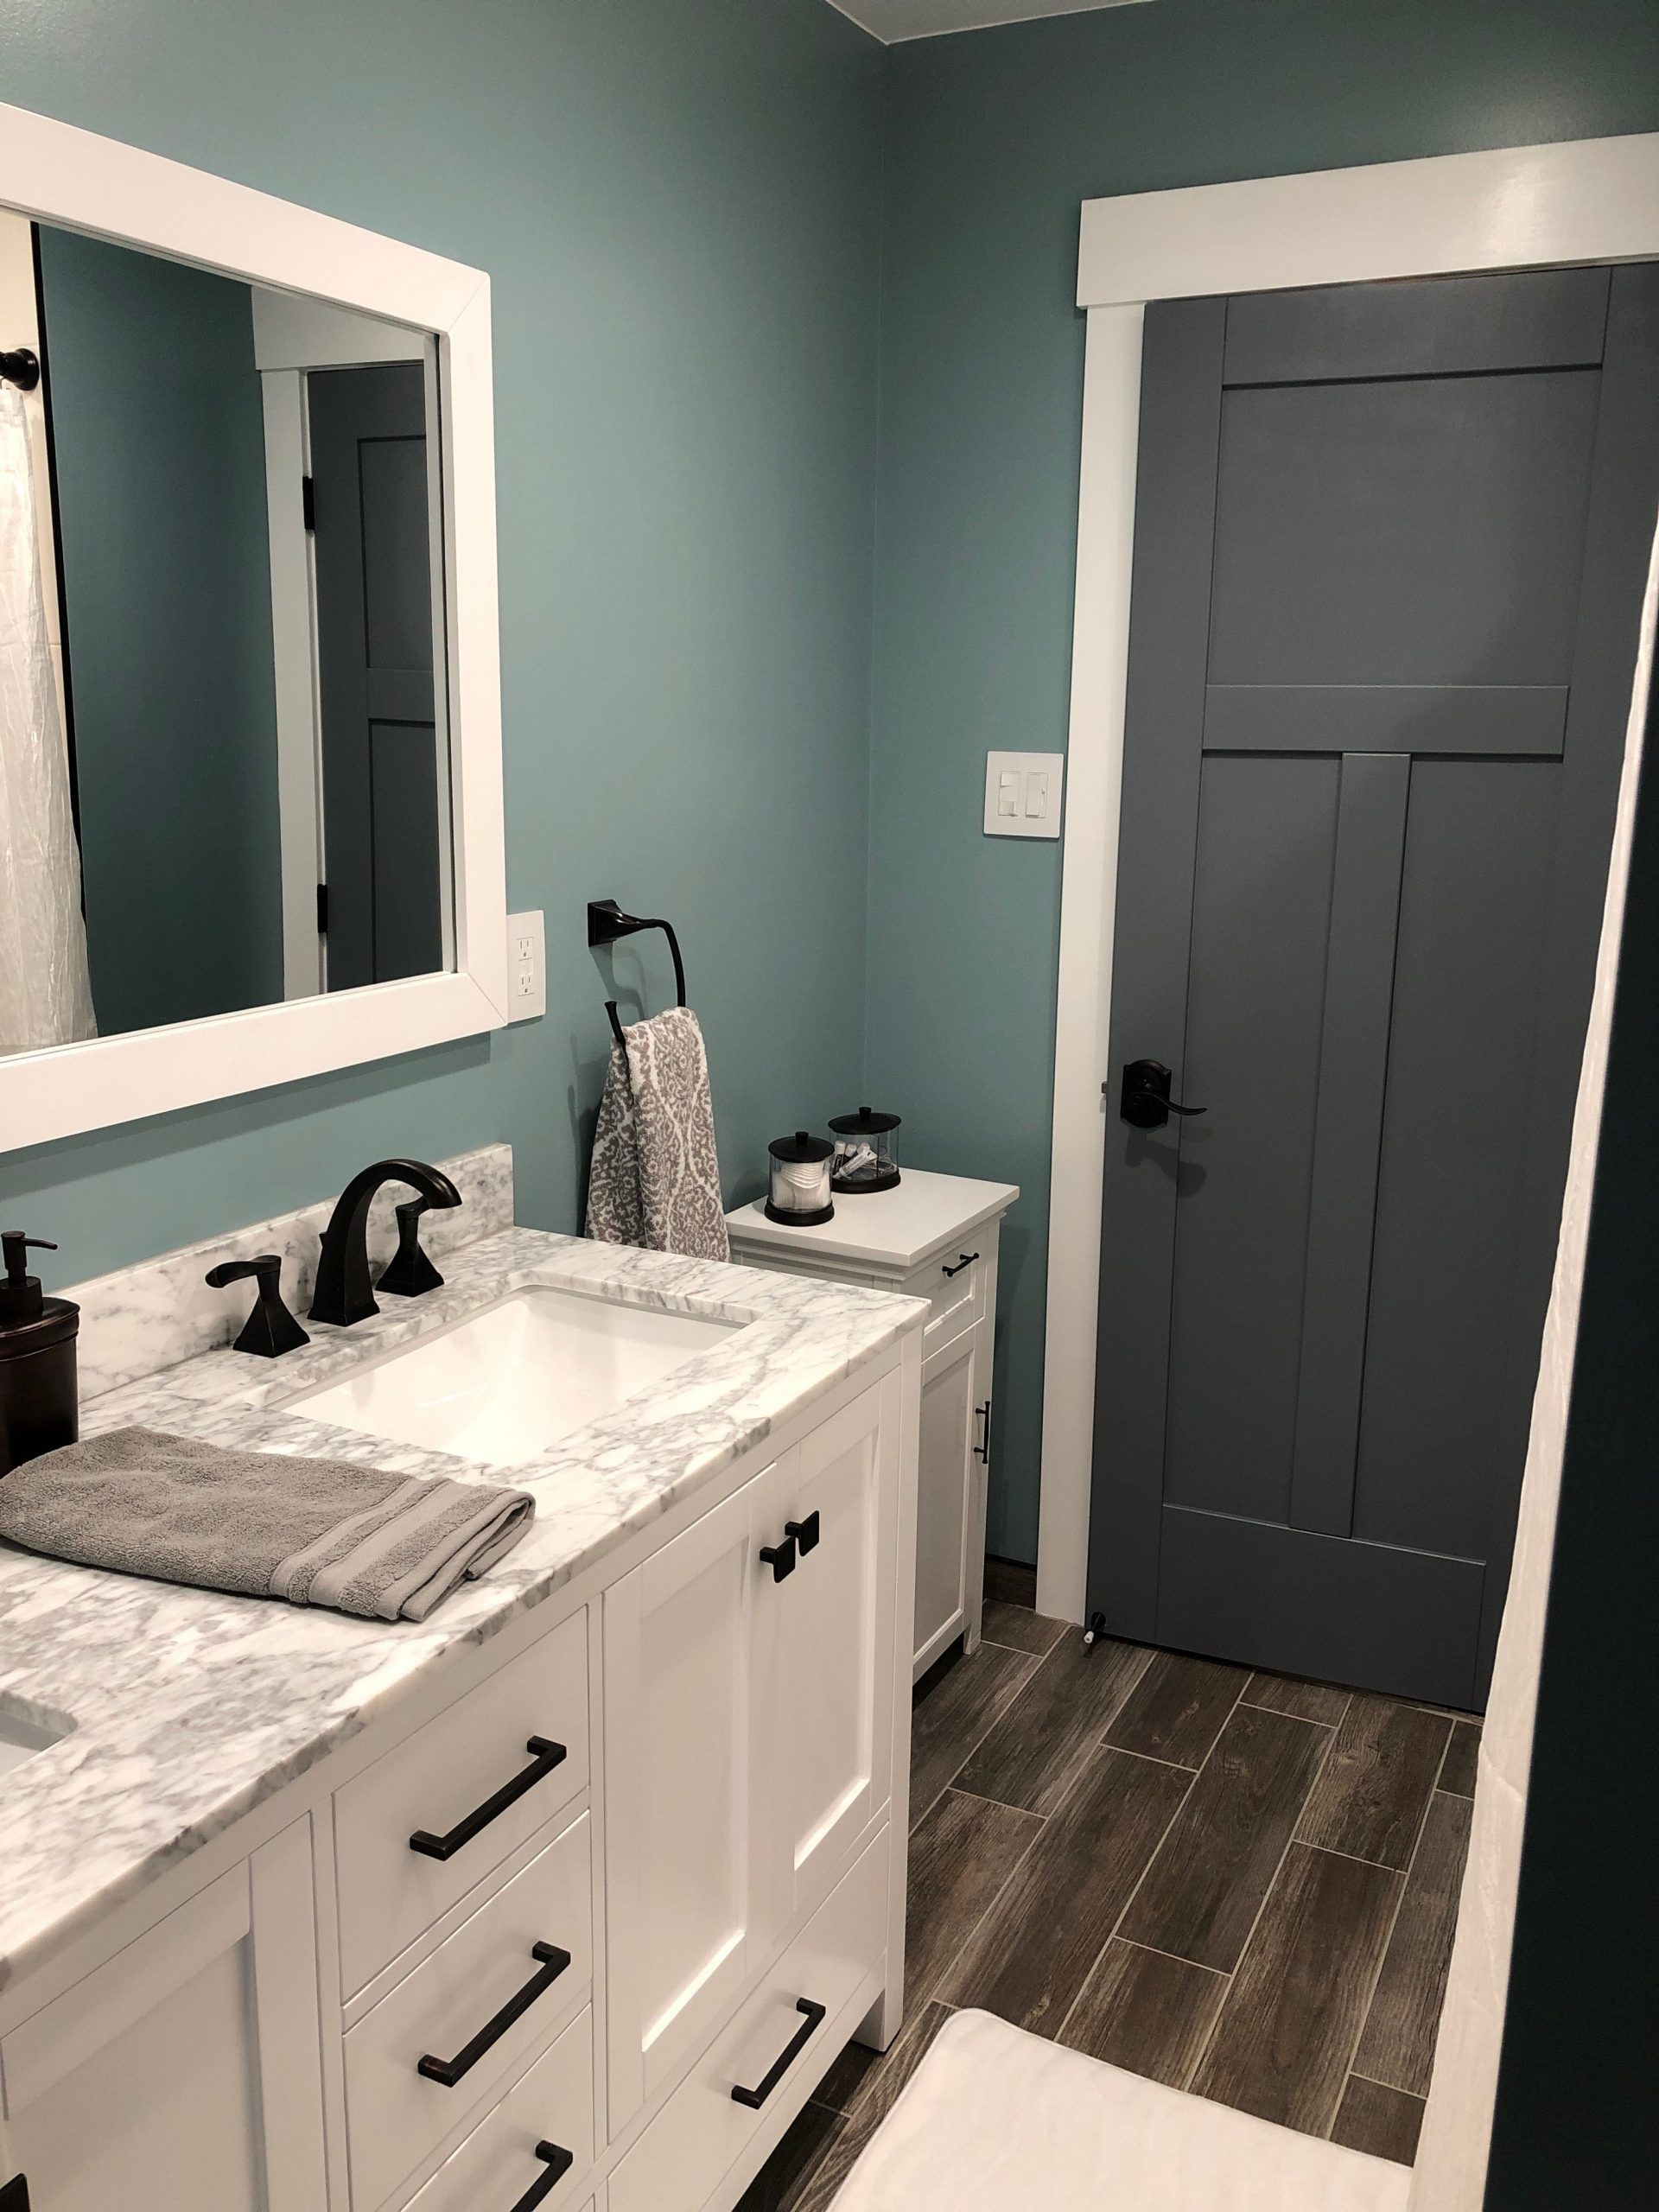 Awesome 10 Sherwin Williams Bathroom Colors Some Of The Cleverest And Inspiring Too For In 2020 Best Bathroom Paint Colors Small Bathroom Paint Bathroom Color Schemes